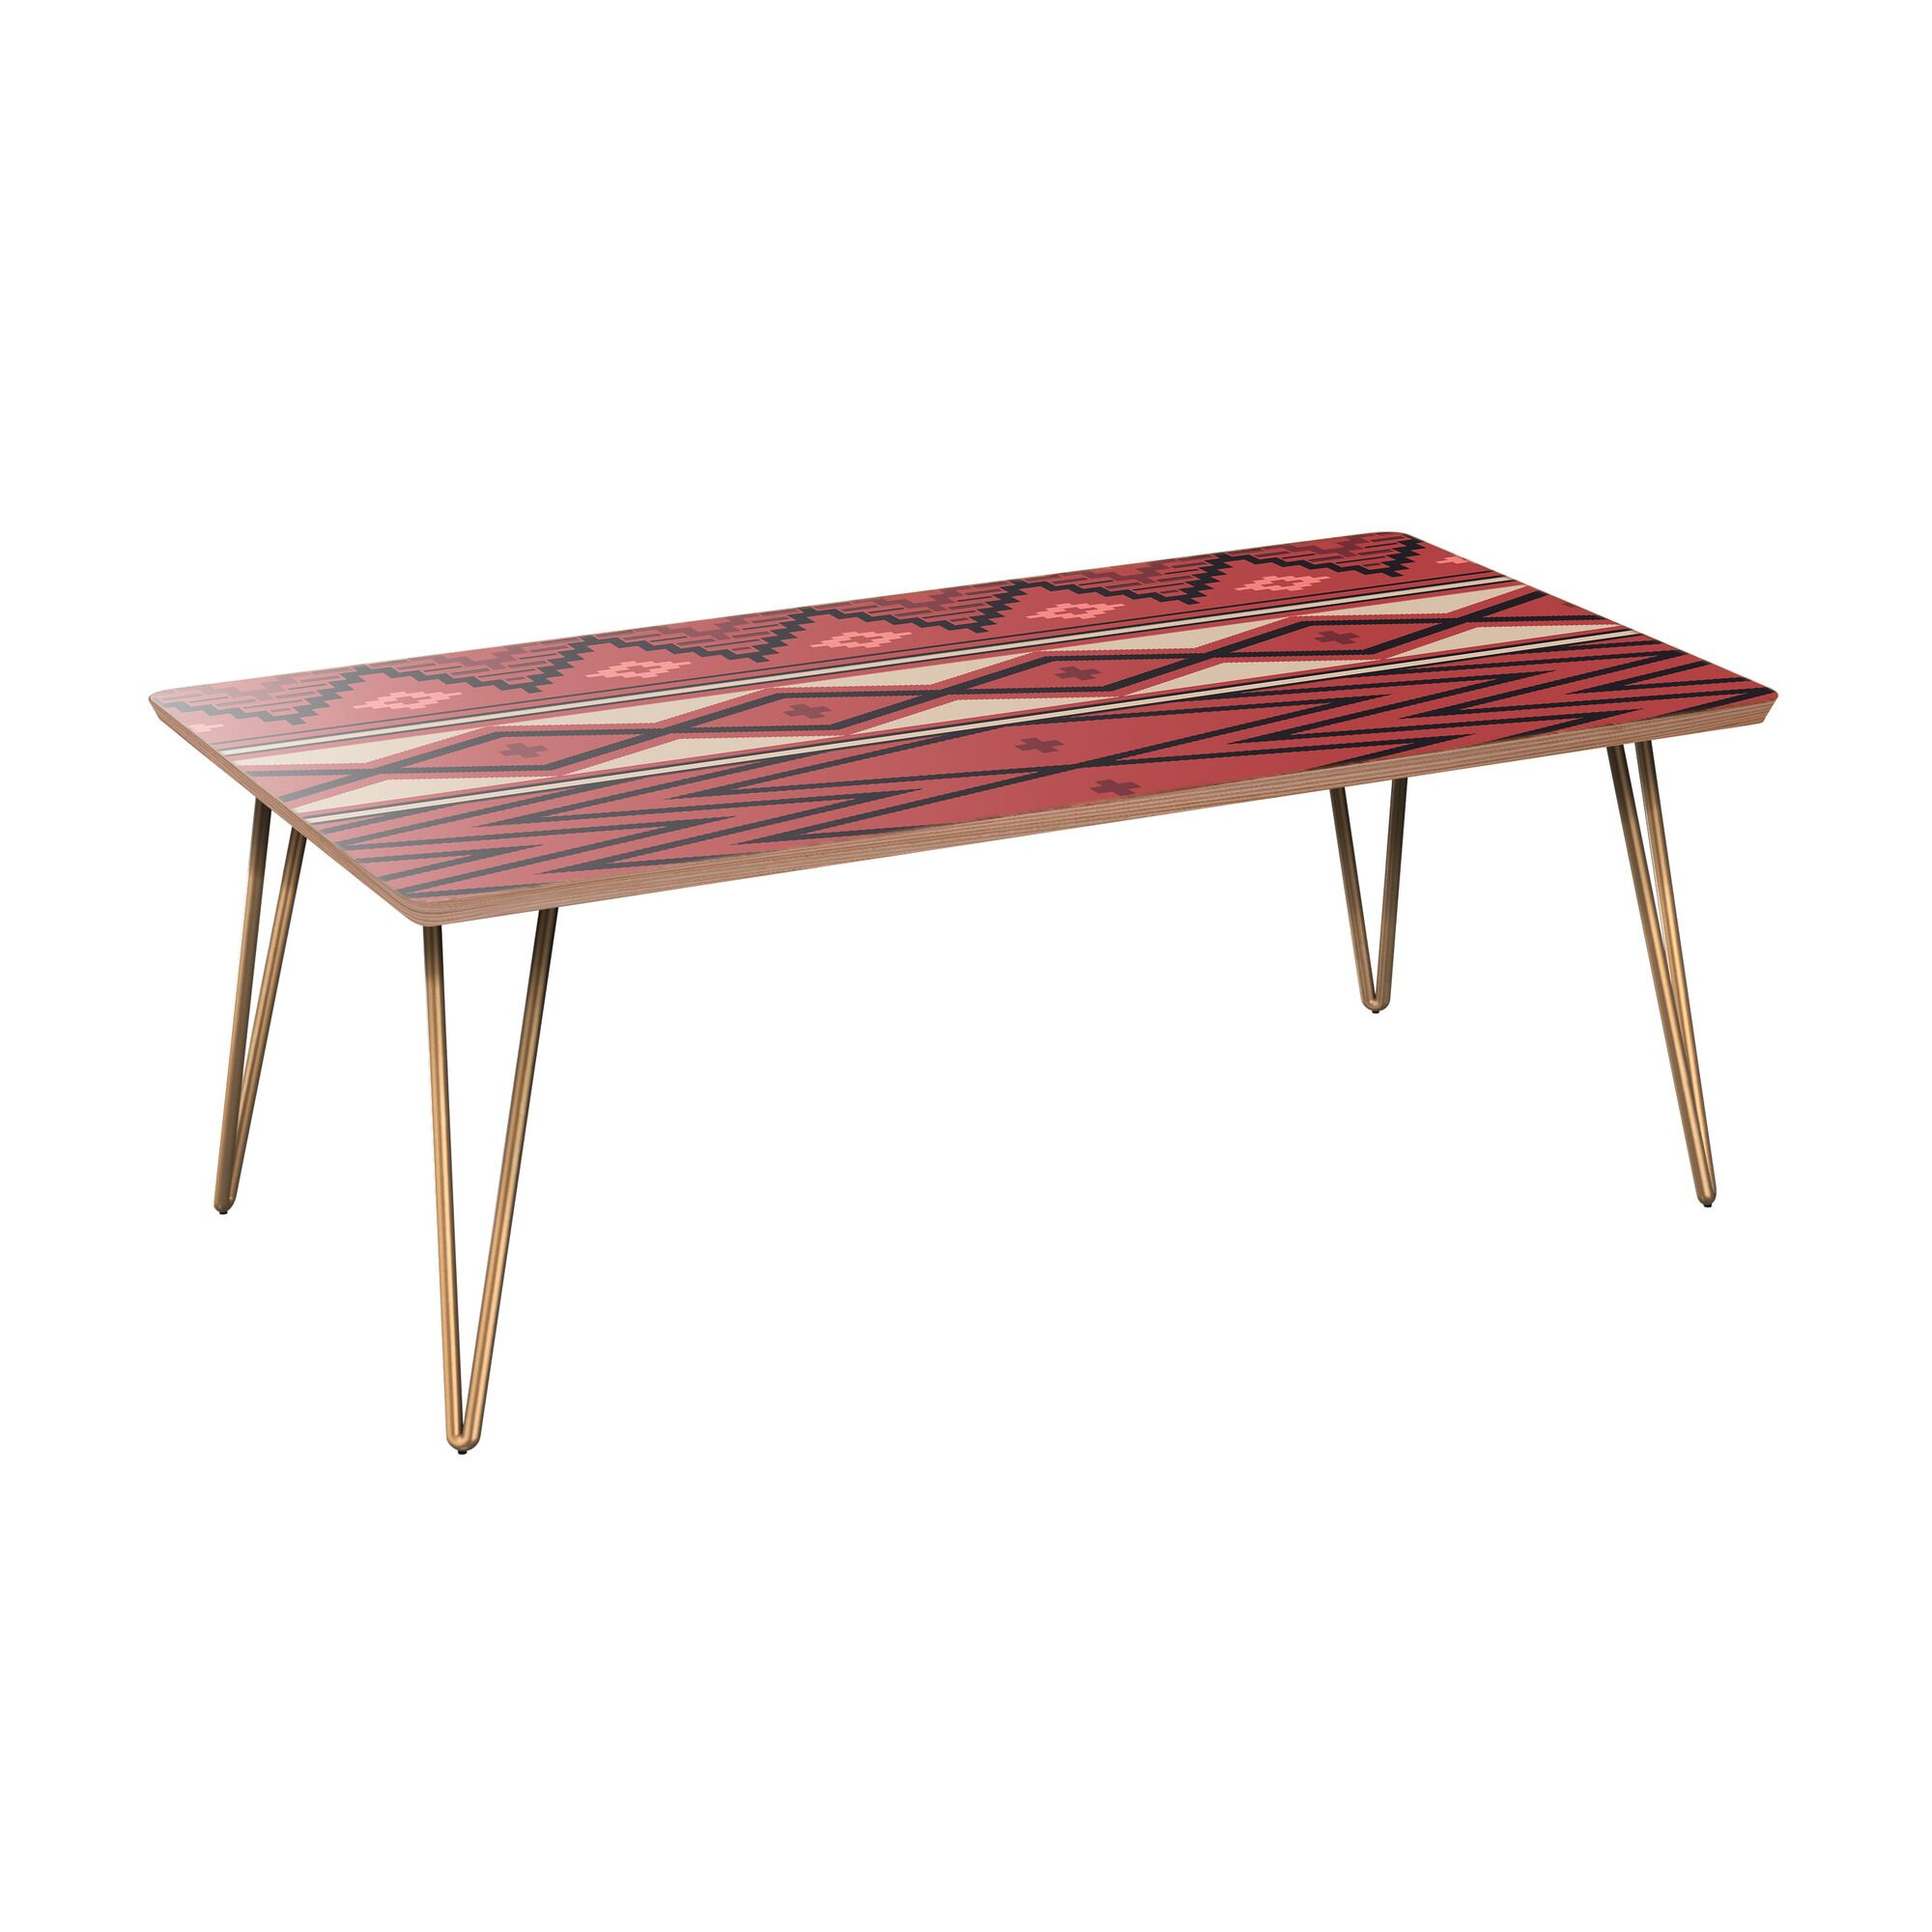 Hornung Coffee Table Table Base Color: Brass, Table Top Boarder Color: Walnut, Table Top Color: Pink/Blue